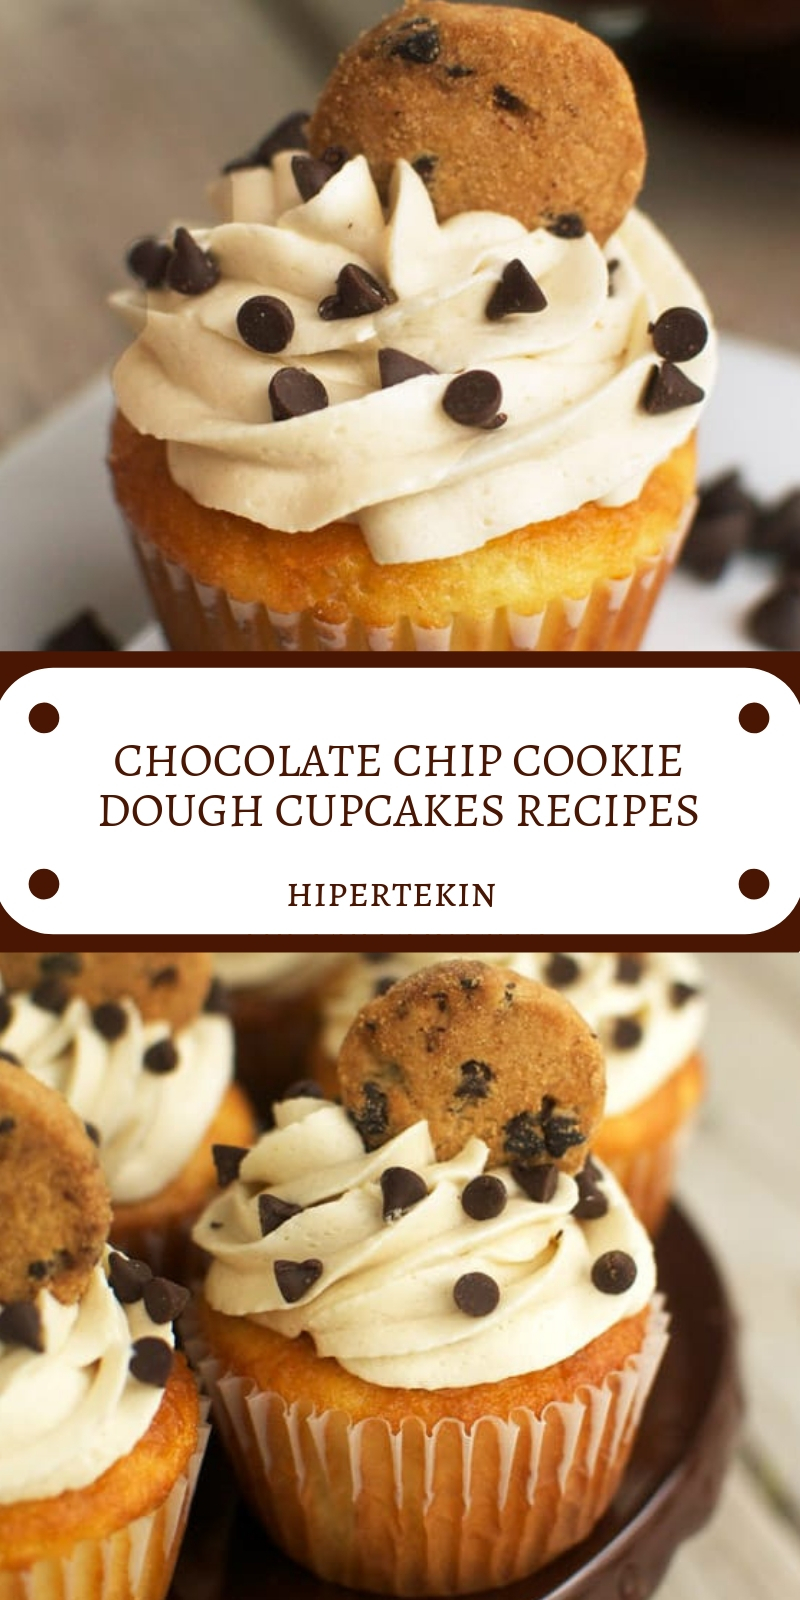 CHOCOLATE CHIP COOKIE DOUGH CUPCAKES RECIPES